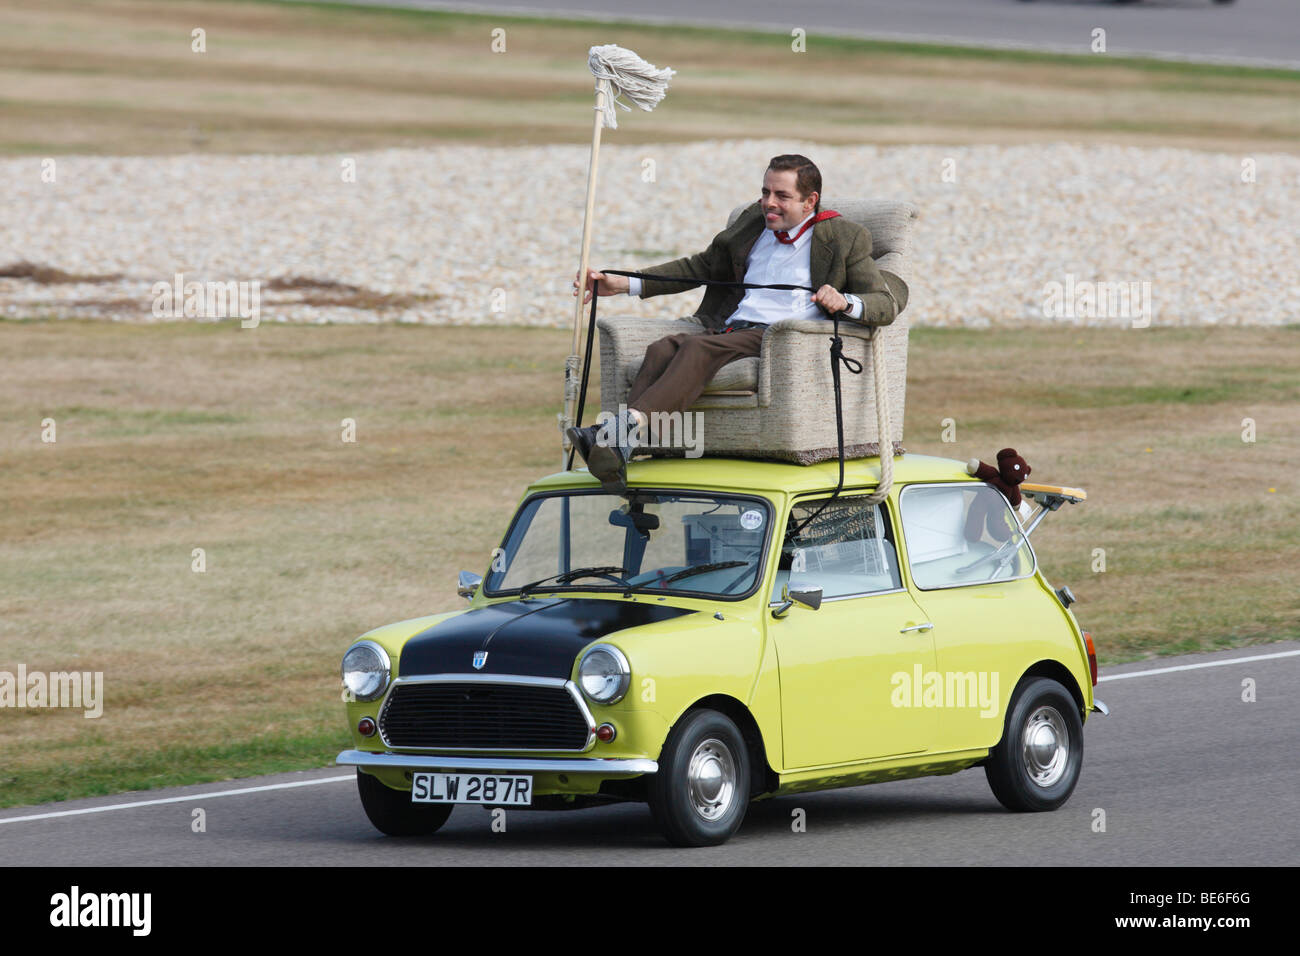 Mr Bean Driving A Classic Mini From Arm Chair On Its Roof Stock Photo Royalty Free Image